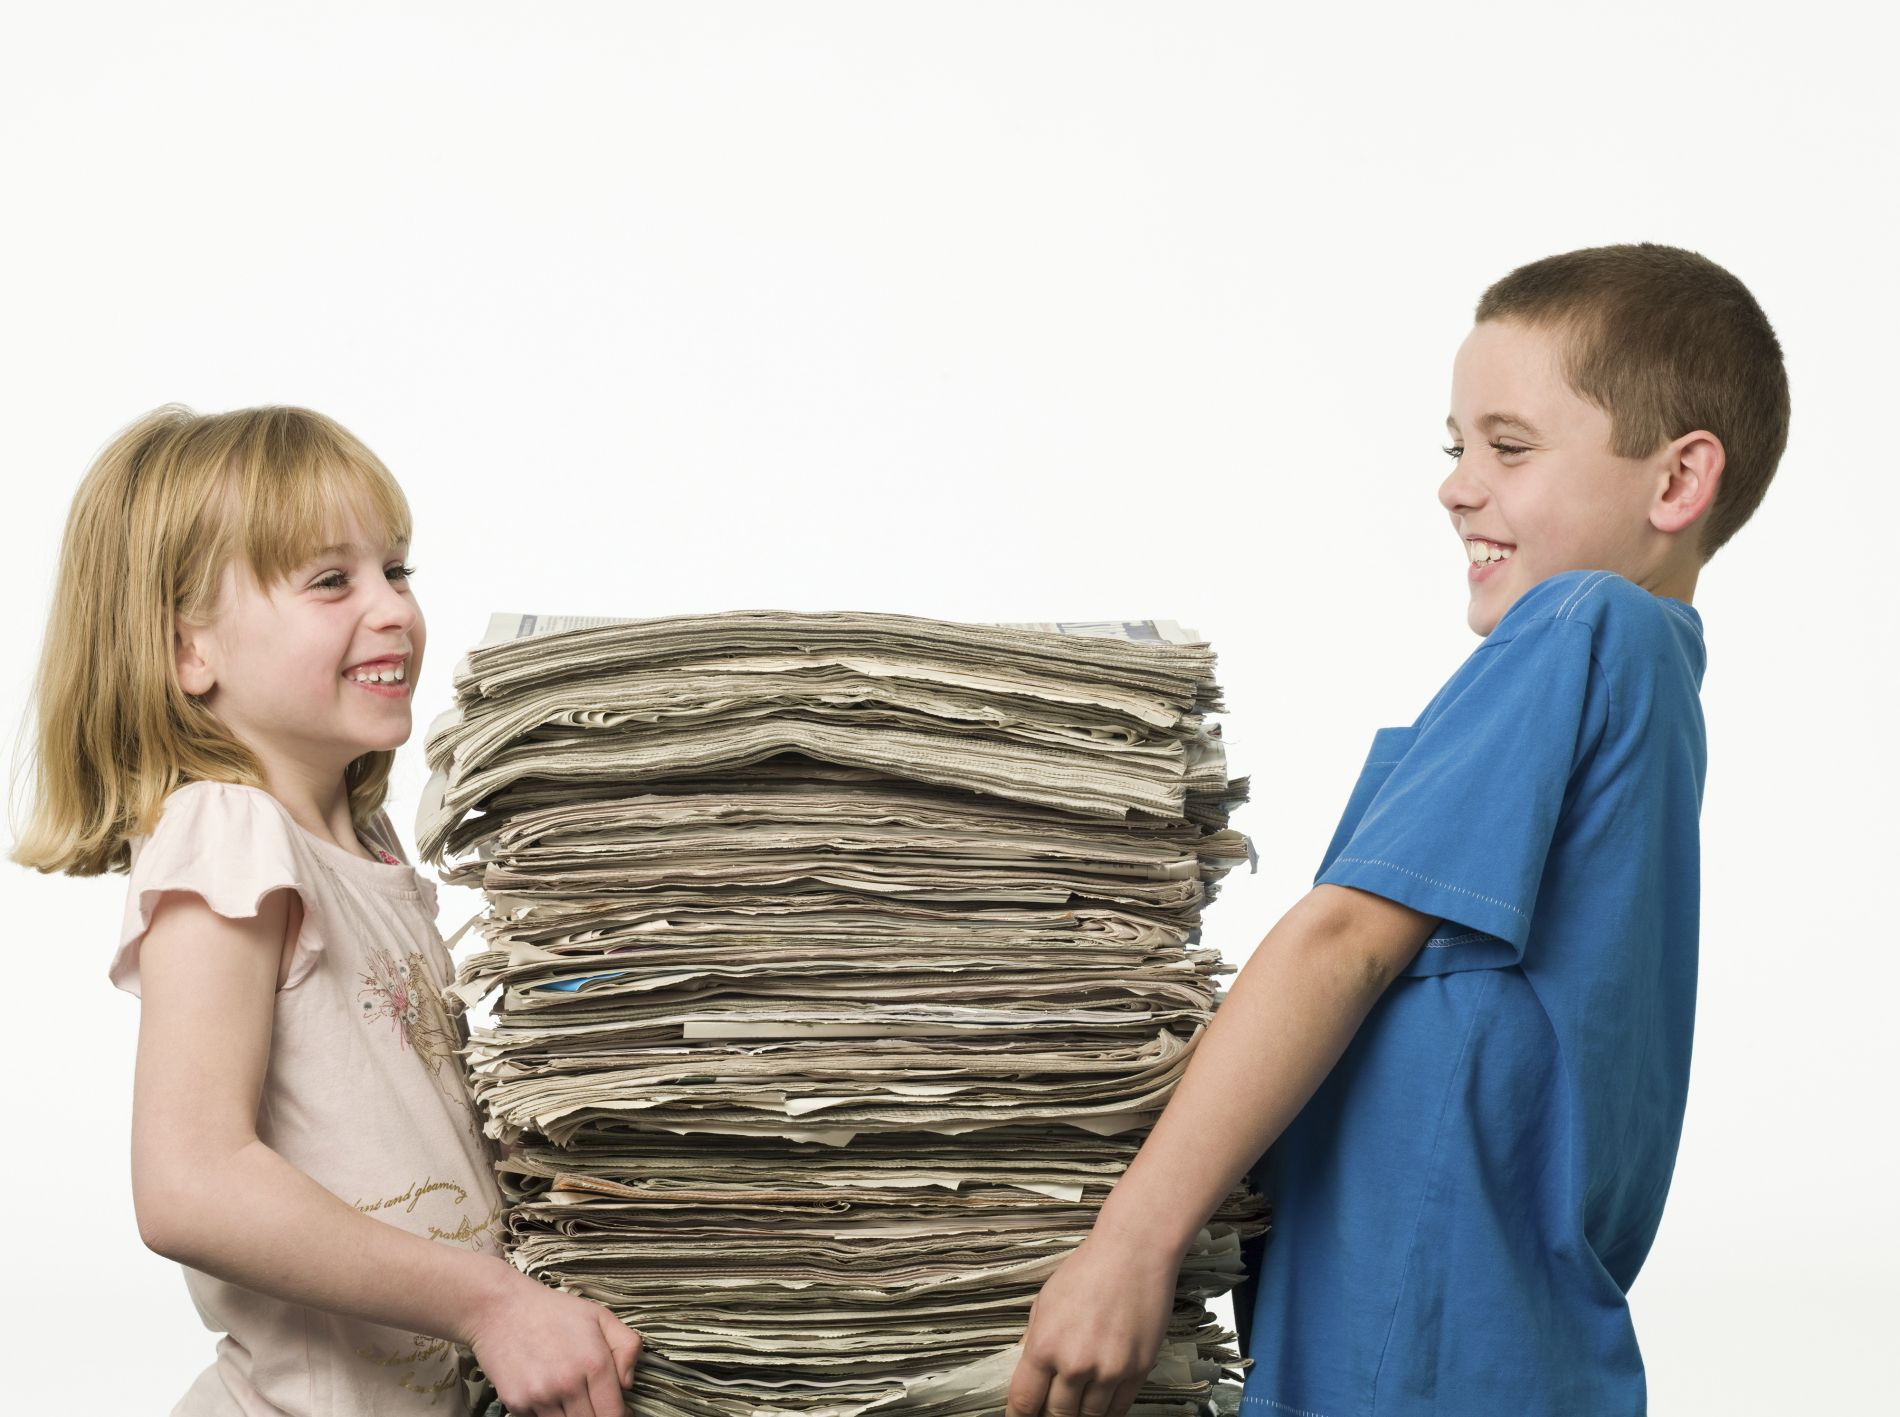 Children carrying Newspapers.